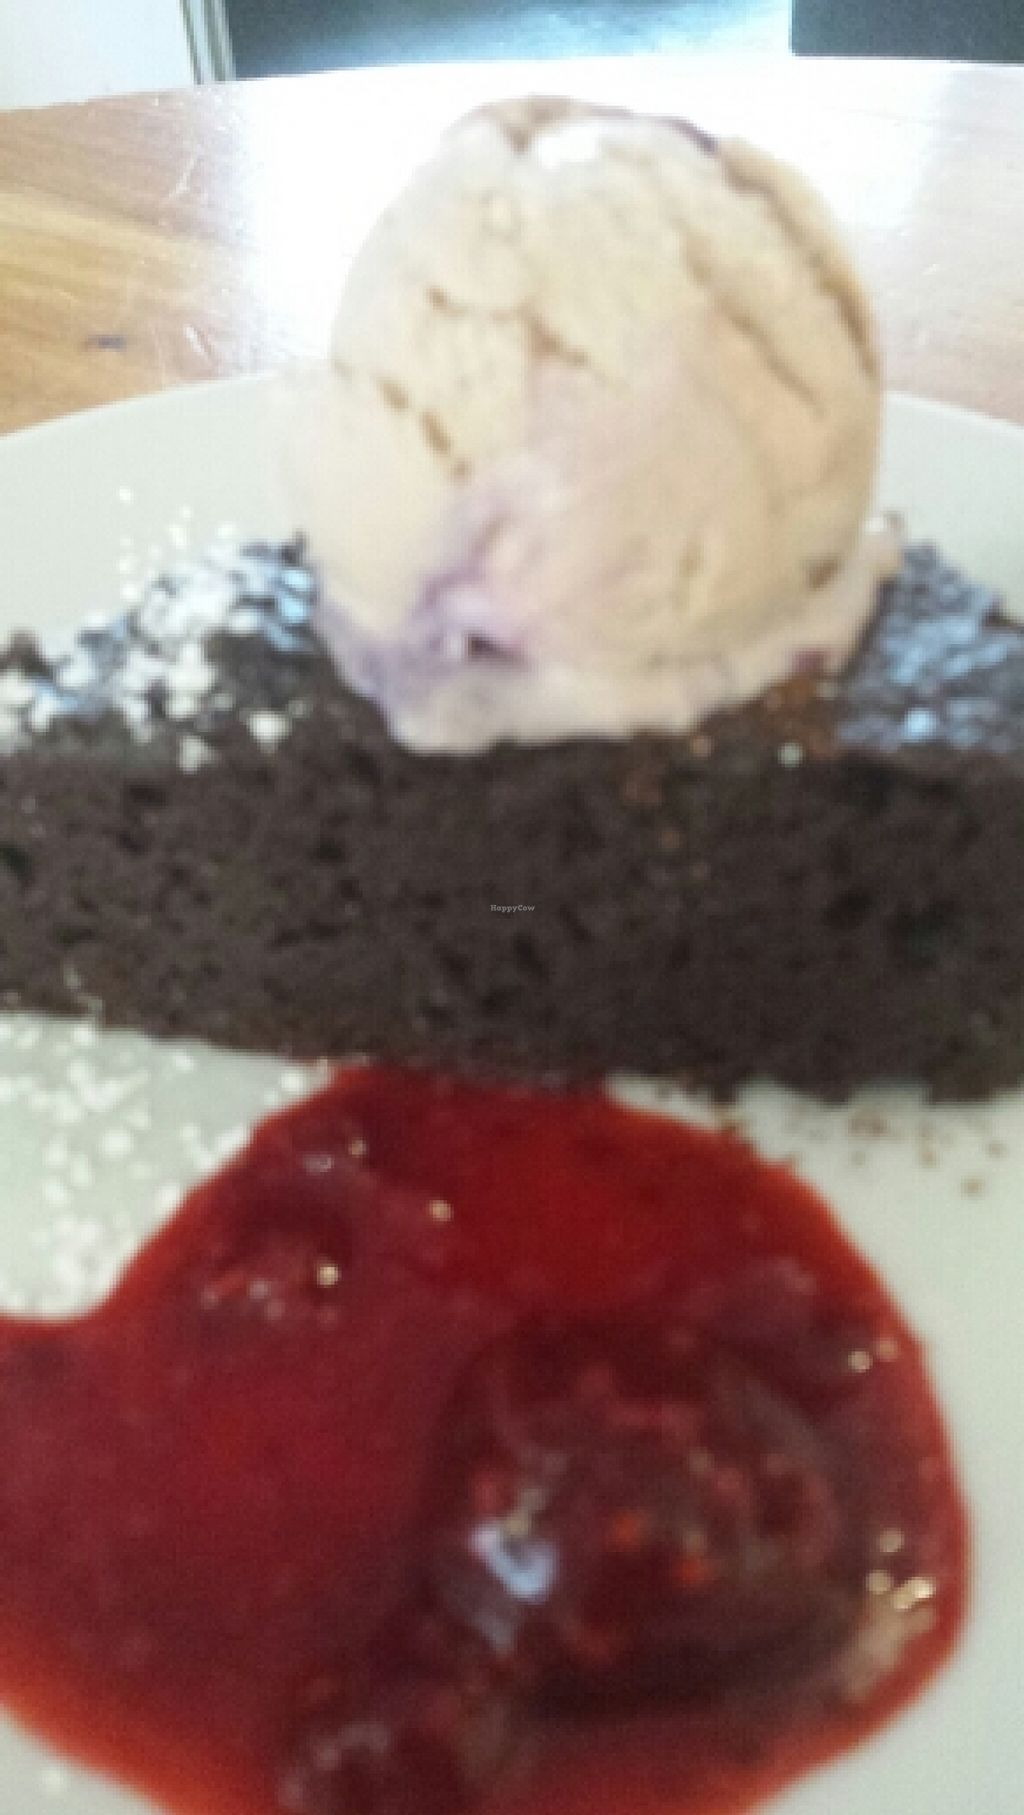 """Photo of The Warehouse Cafe  by <a href=""""/members/profile/Good%20for%20Vegans"""">Good for Vegans</a> <br/>Chocolate Brownie and vegan icecream <br/> October 9, 2015  - <a href='/contact/abuse/image/640/120715'>Report</a>"""